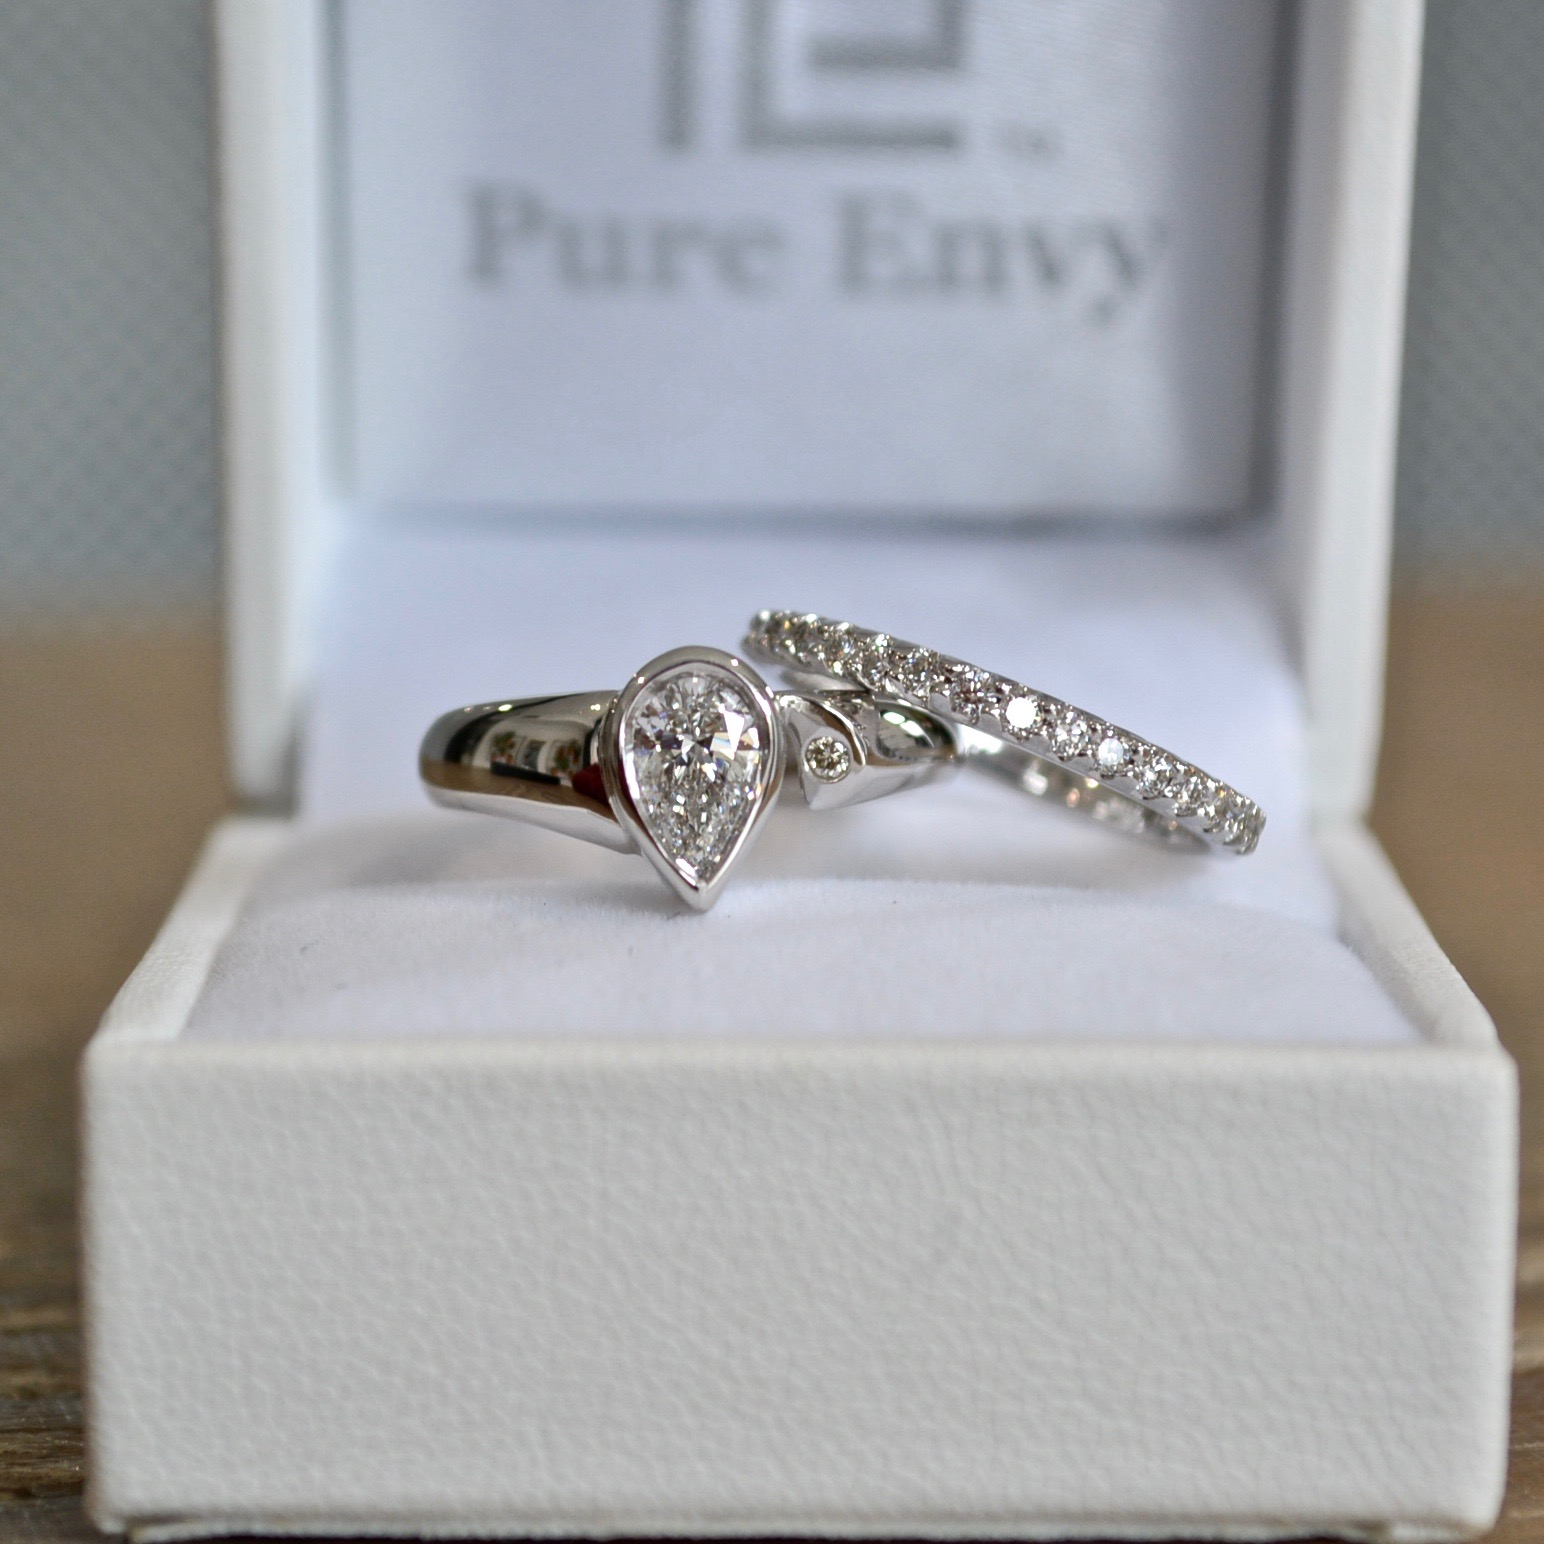 Pear shaped diamond solitaire